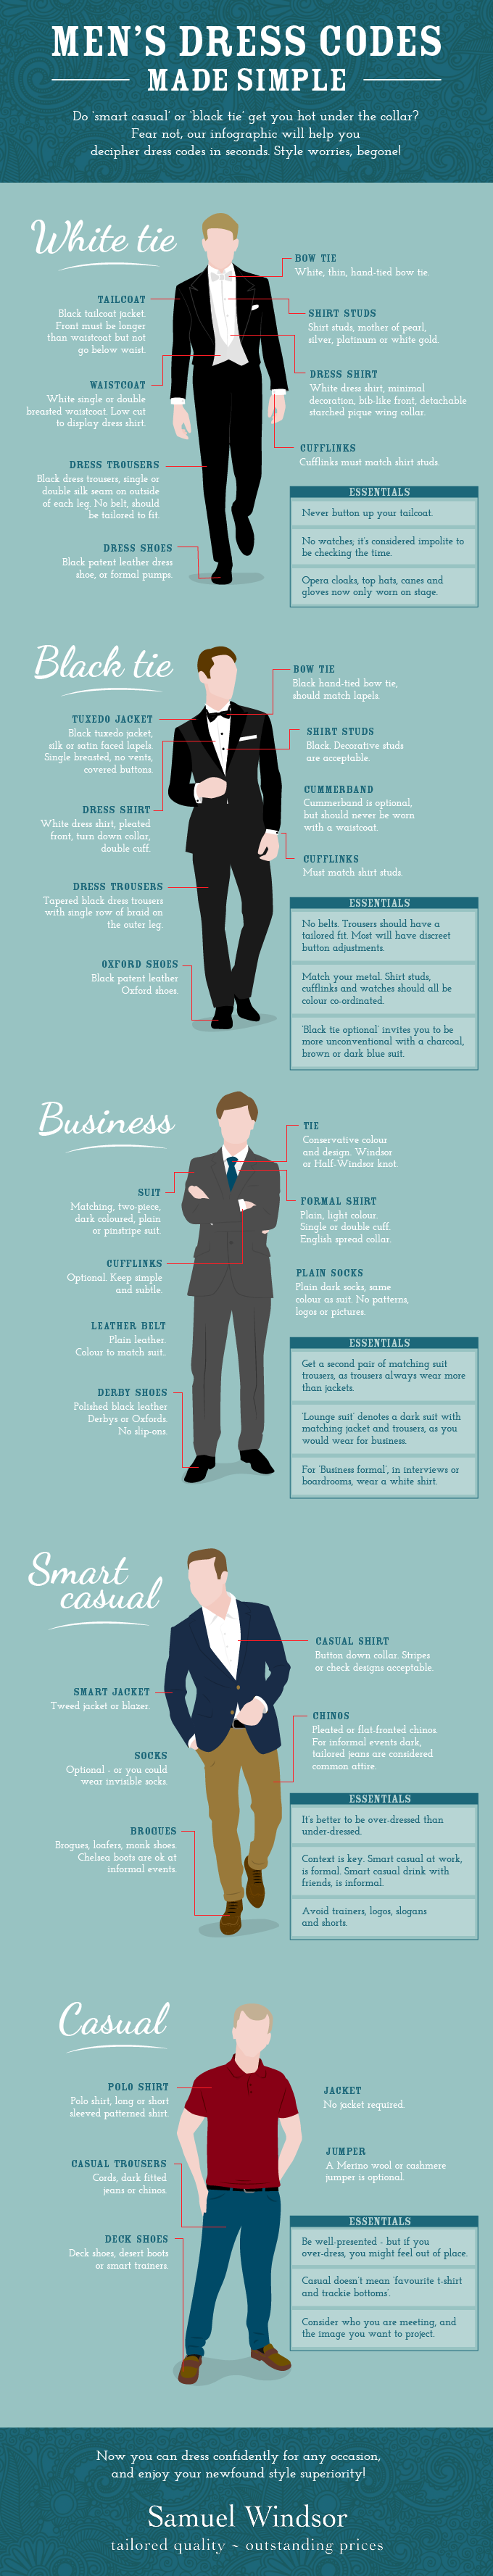 Men's Dress Codes Made Simple #infographic #Fashion #Men Fashion #Dress Codes